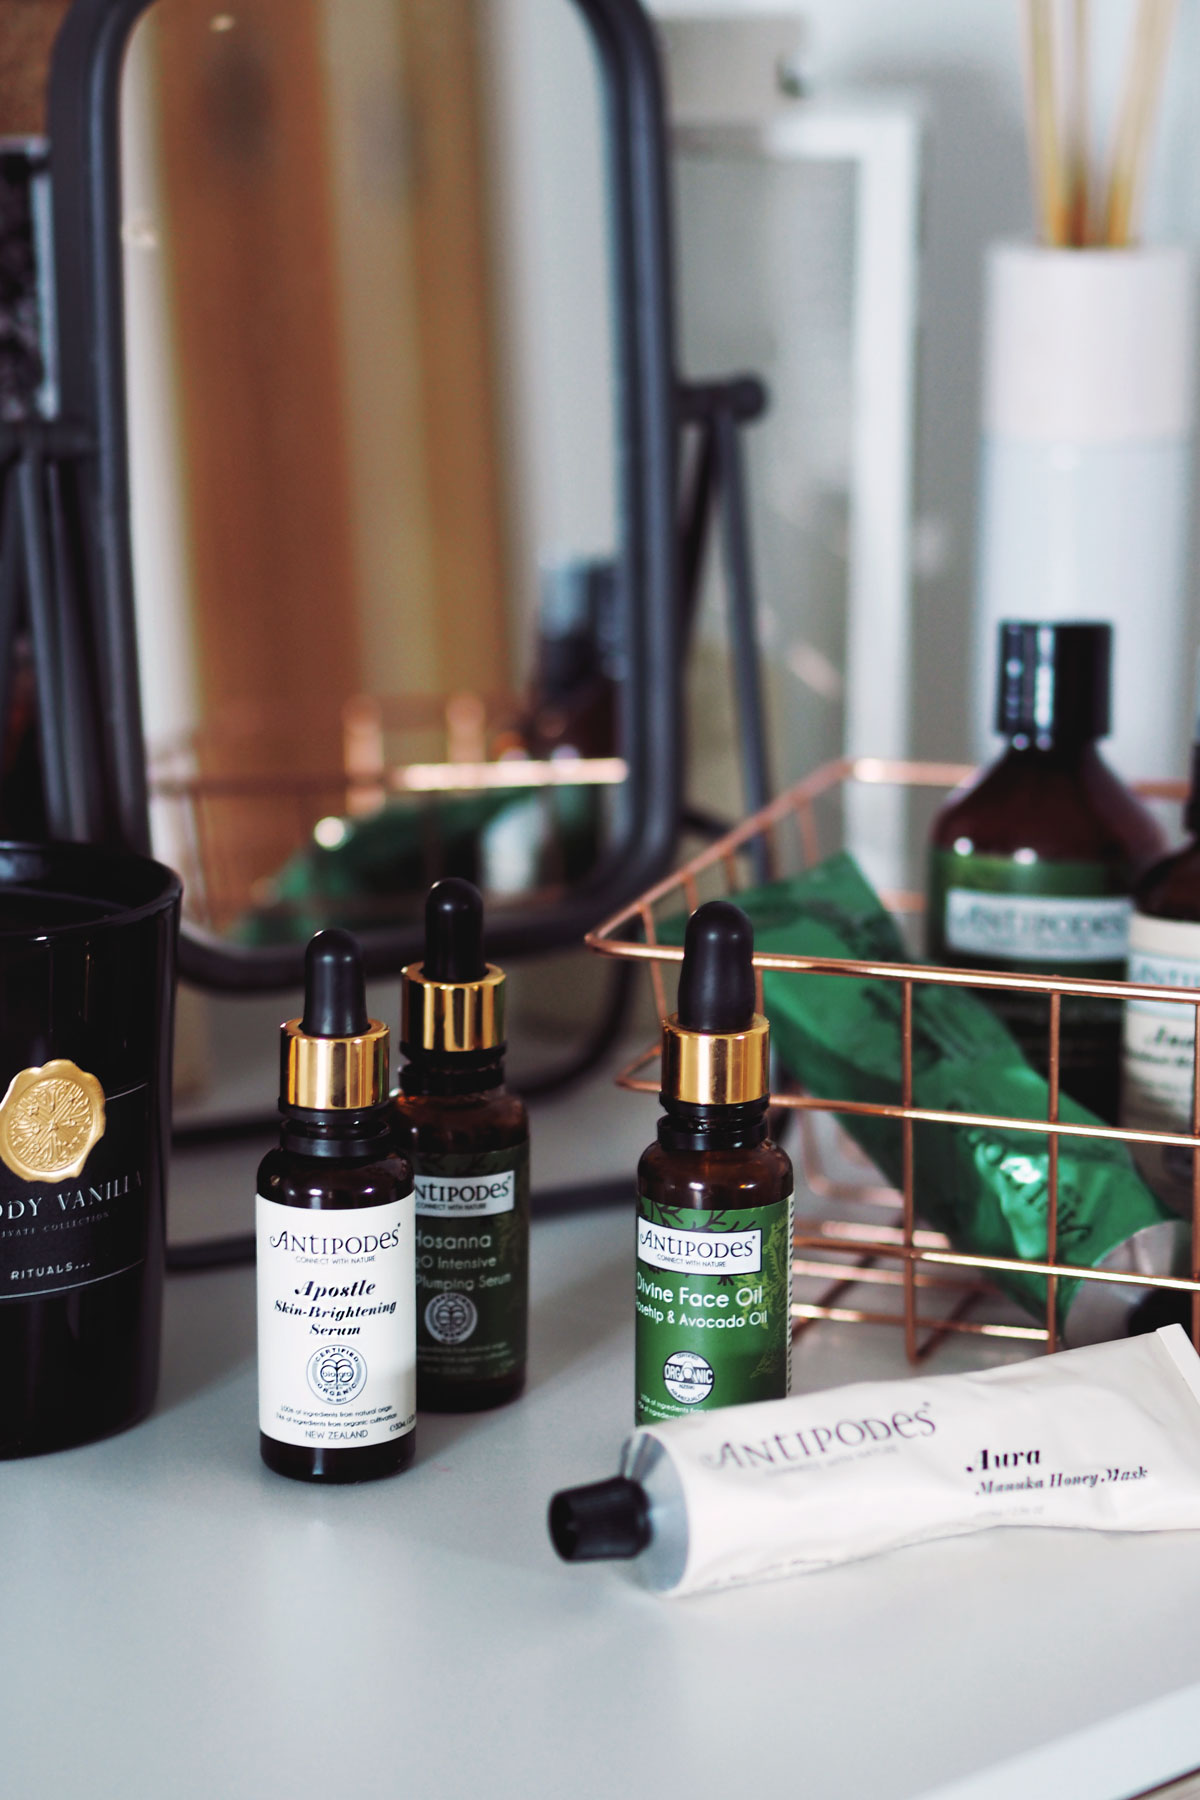 The Best of Antipodes Skincare